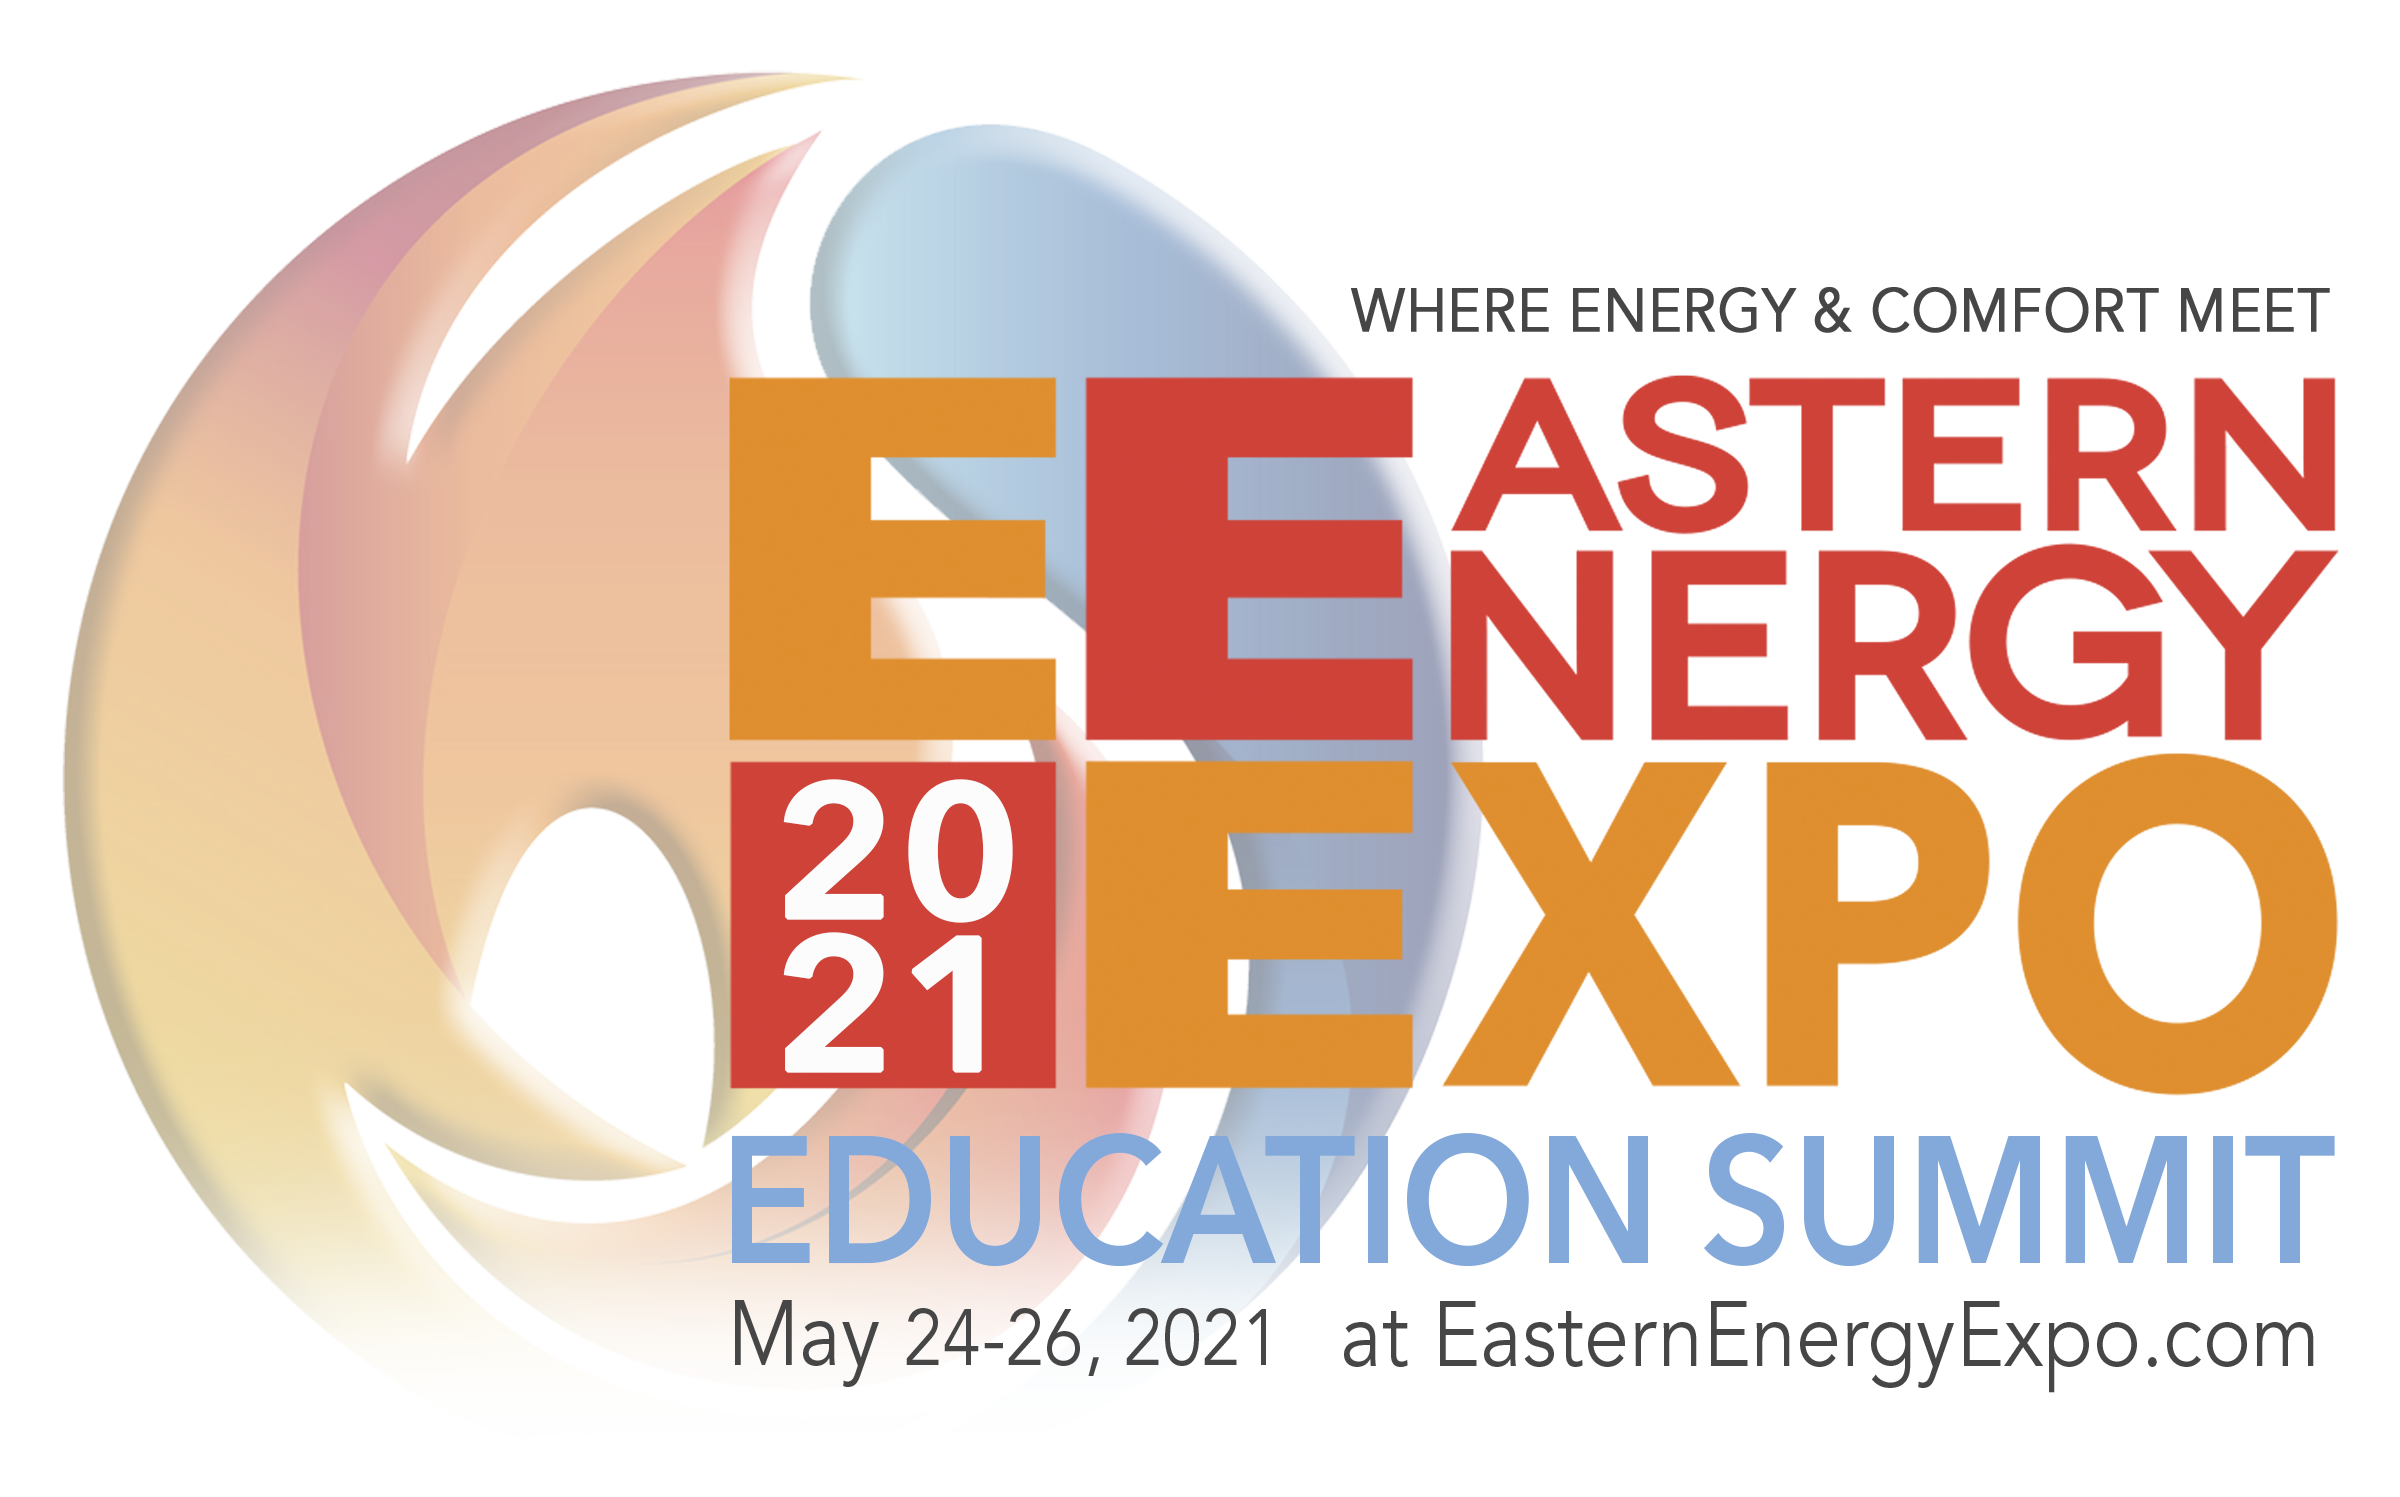 Eastern Energy Expo Education Summit